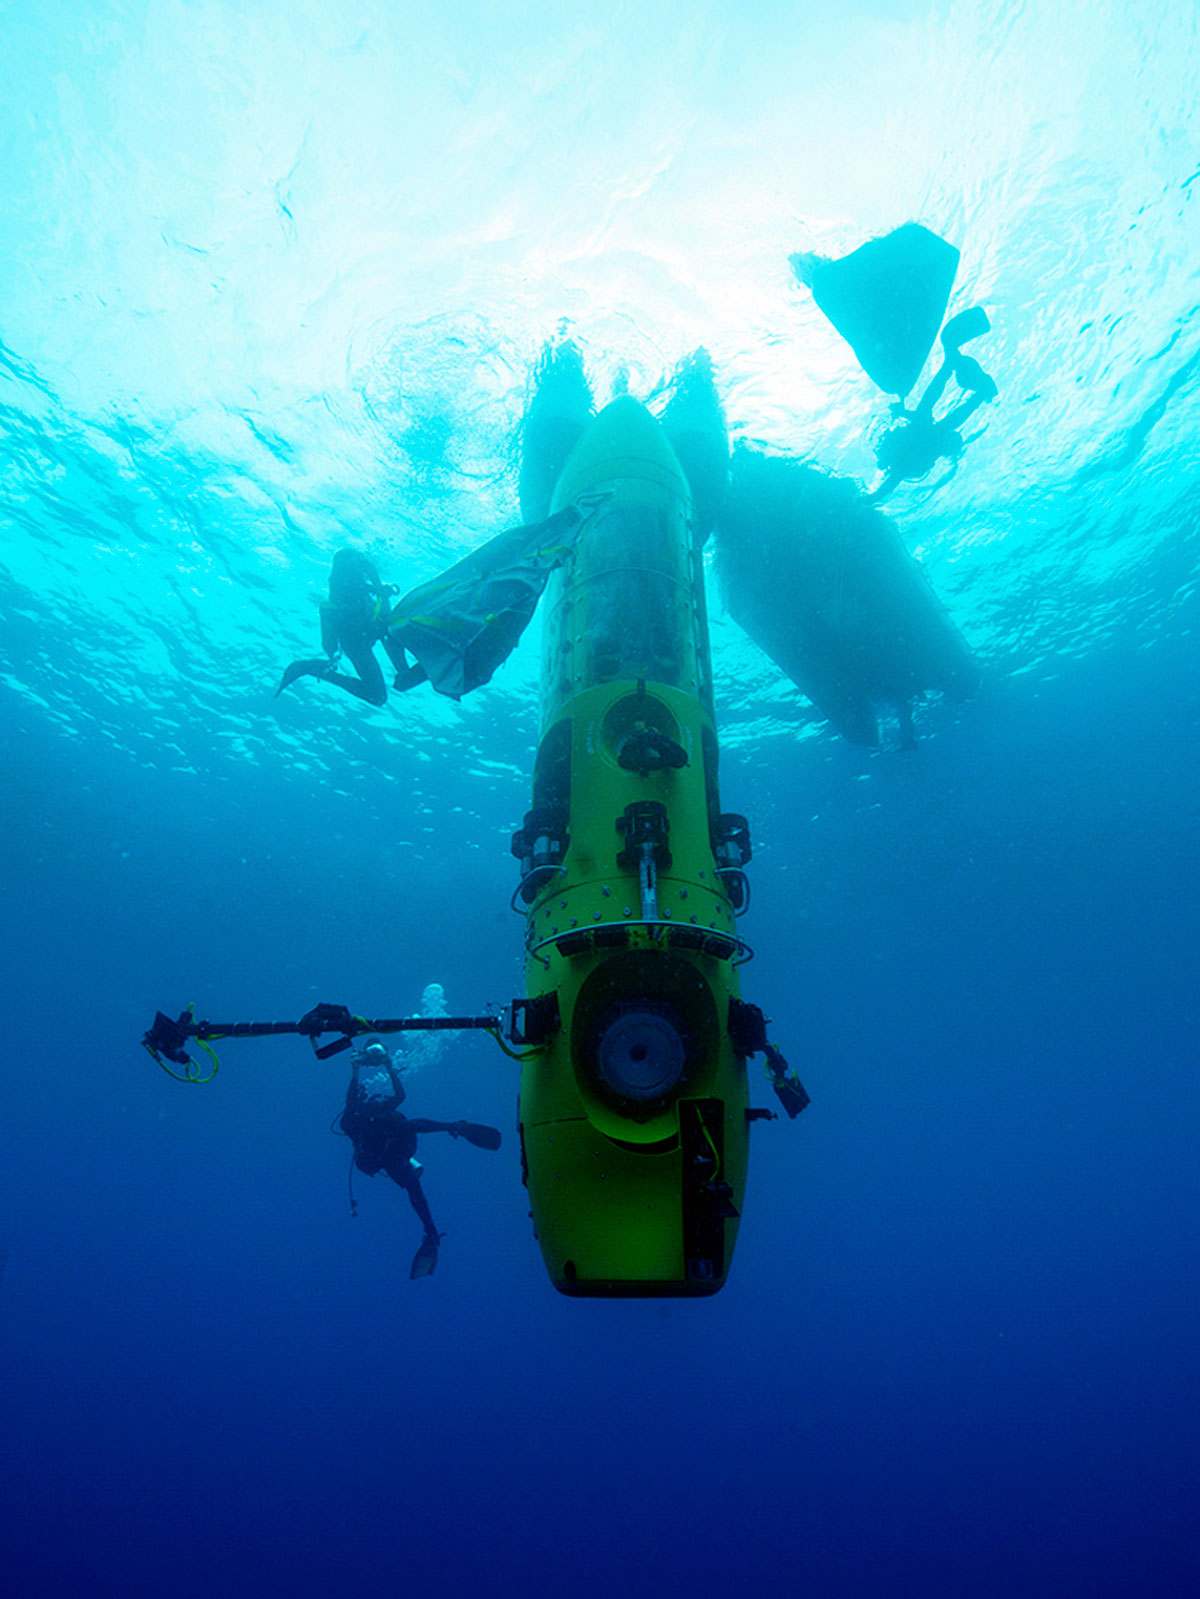 Rolex Deepsea Challenge Attached To Robotic Arm On Deepsea